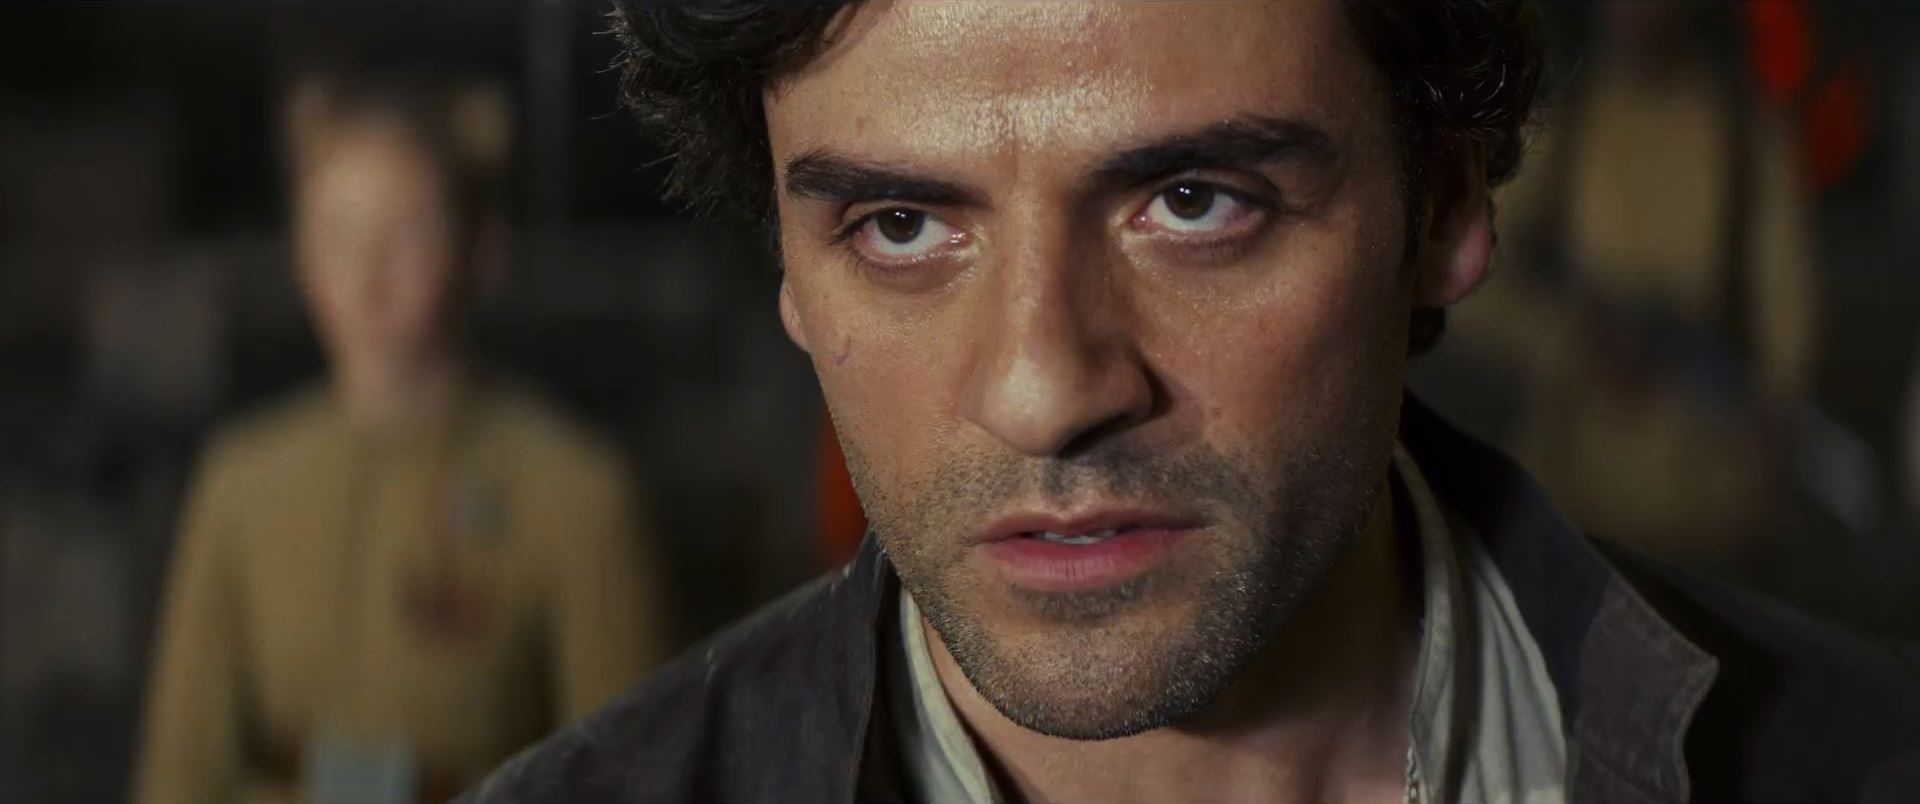 The Last Jedi Trailer - Poe Dameron played by Oscar Isaac